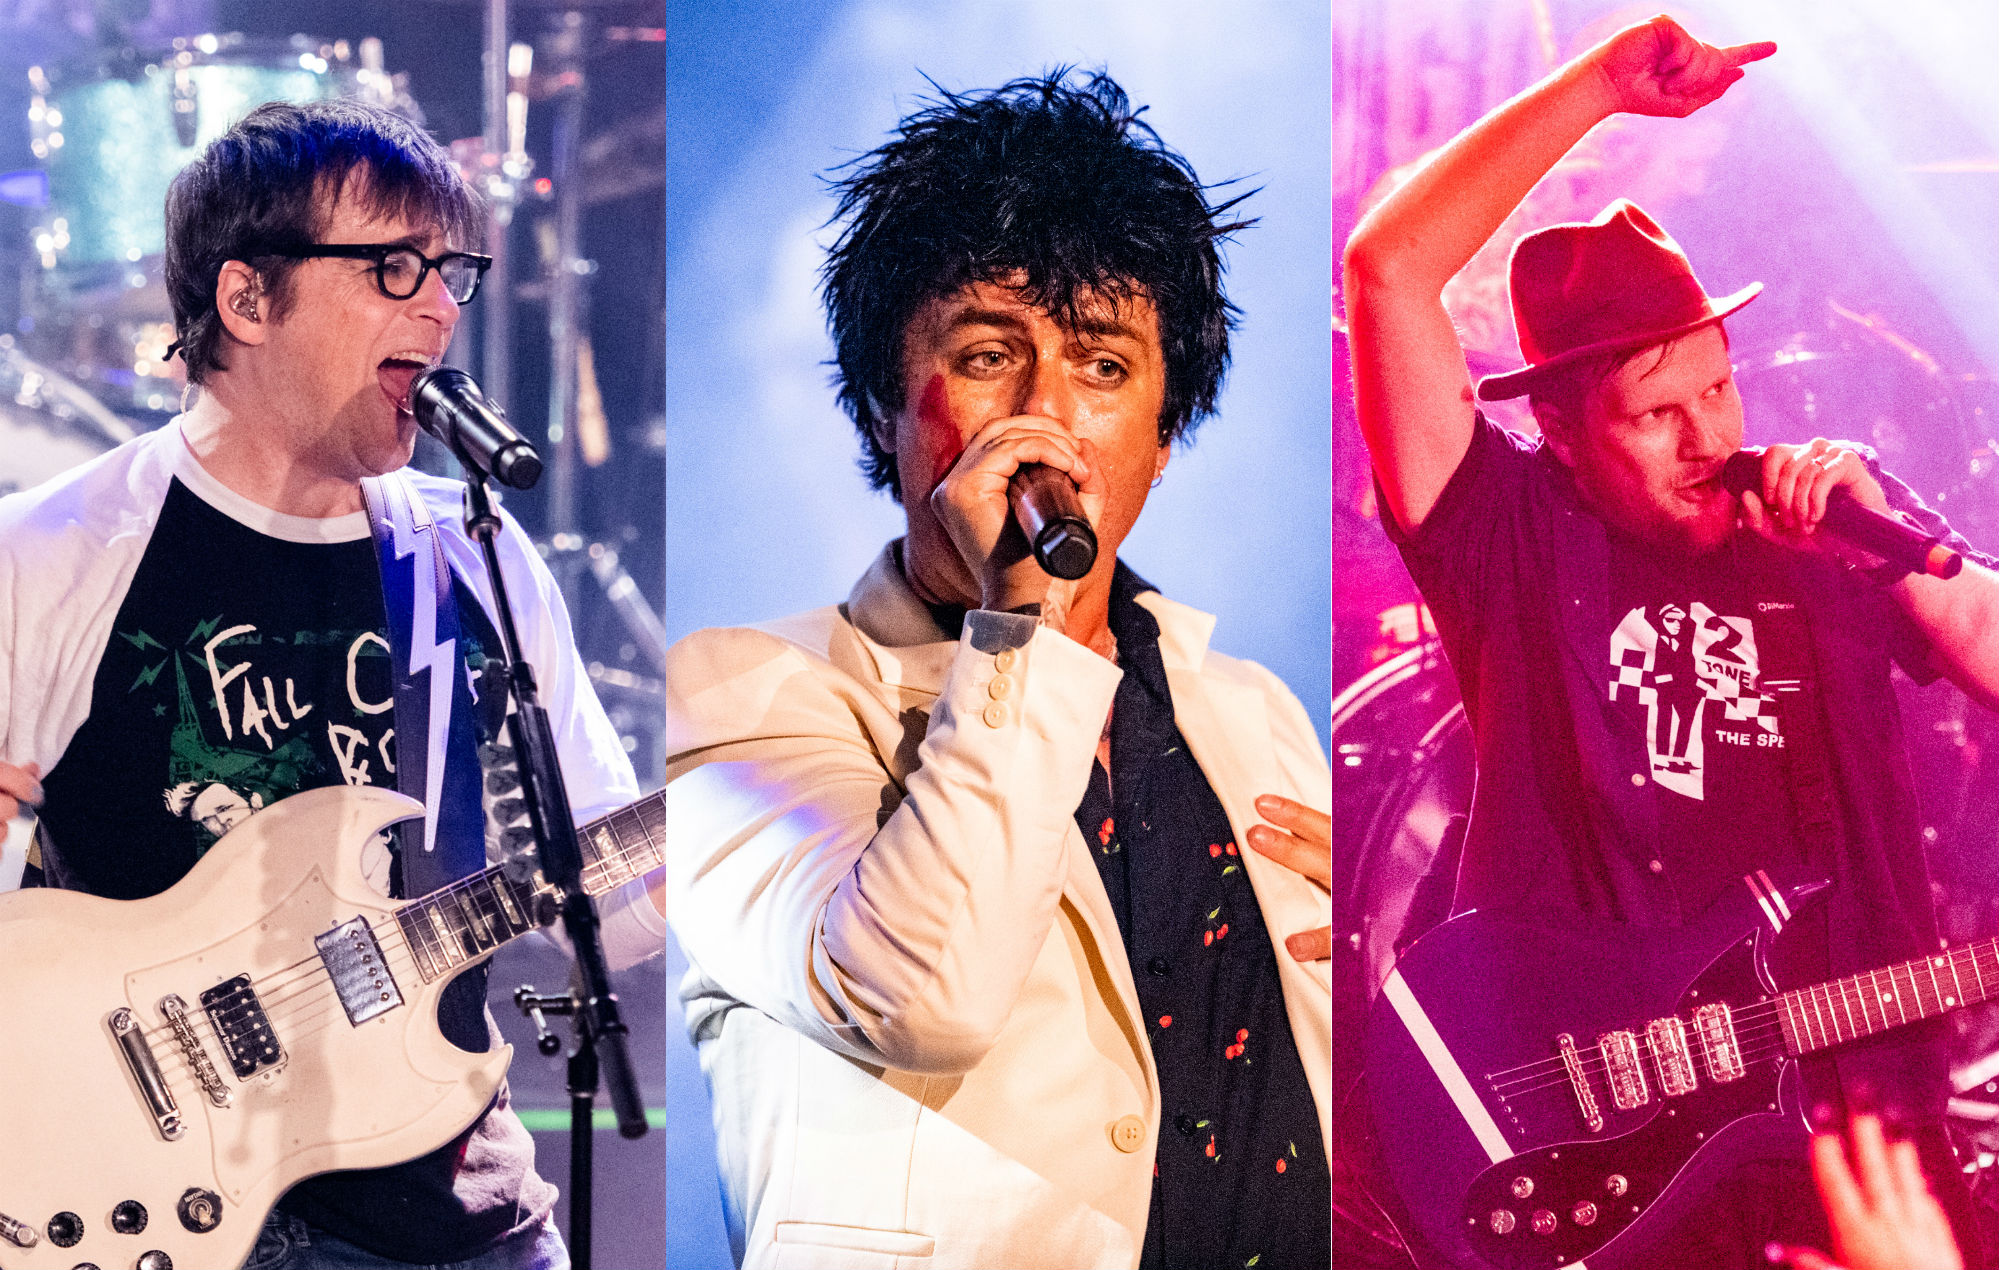 Green Day Weezer And Fall Out Boy Their New Songs Ranked